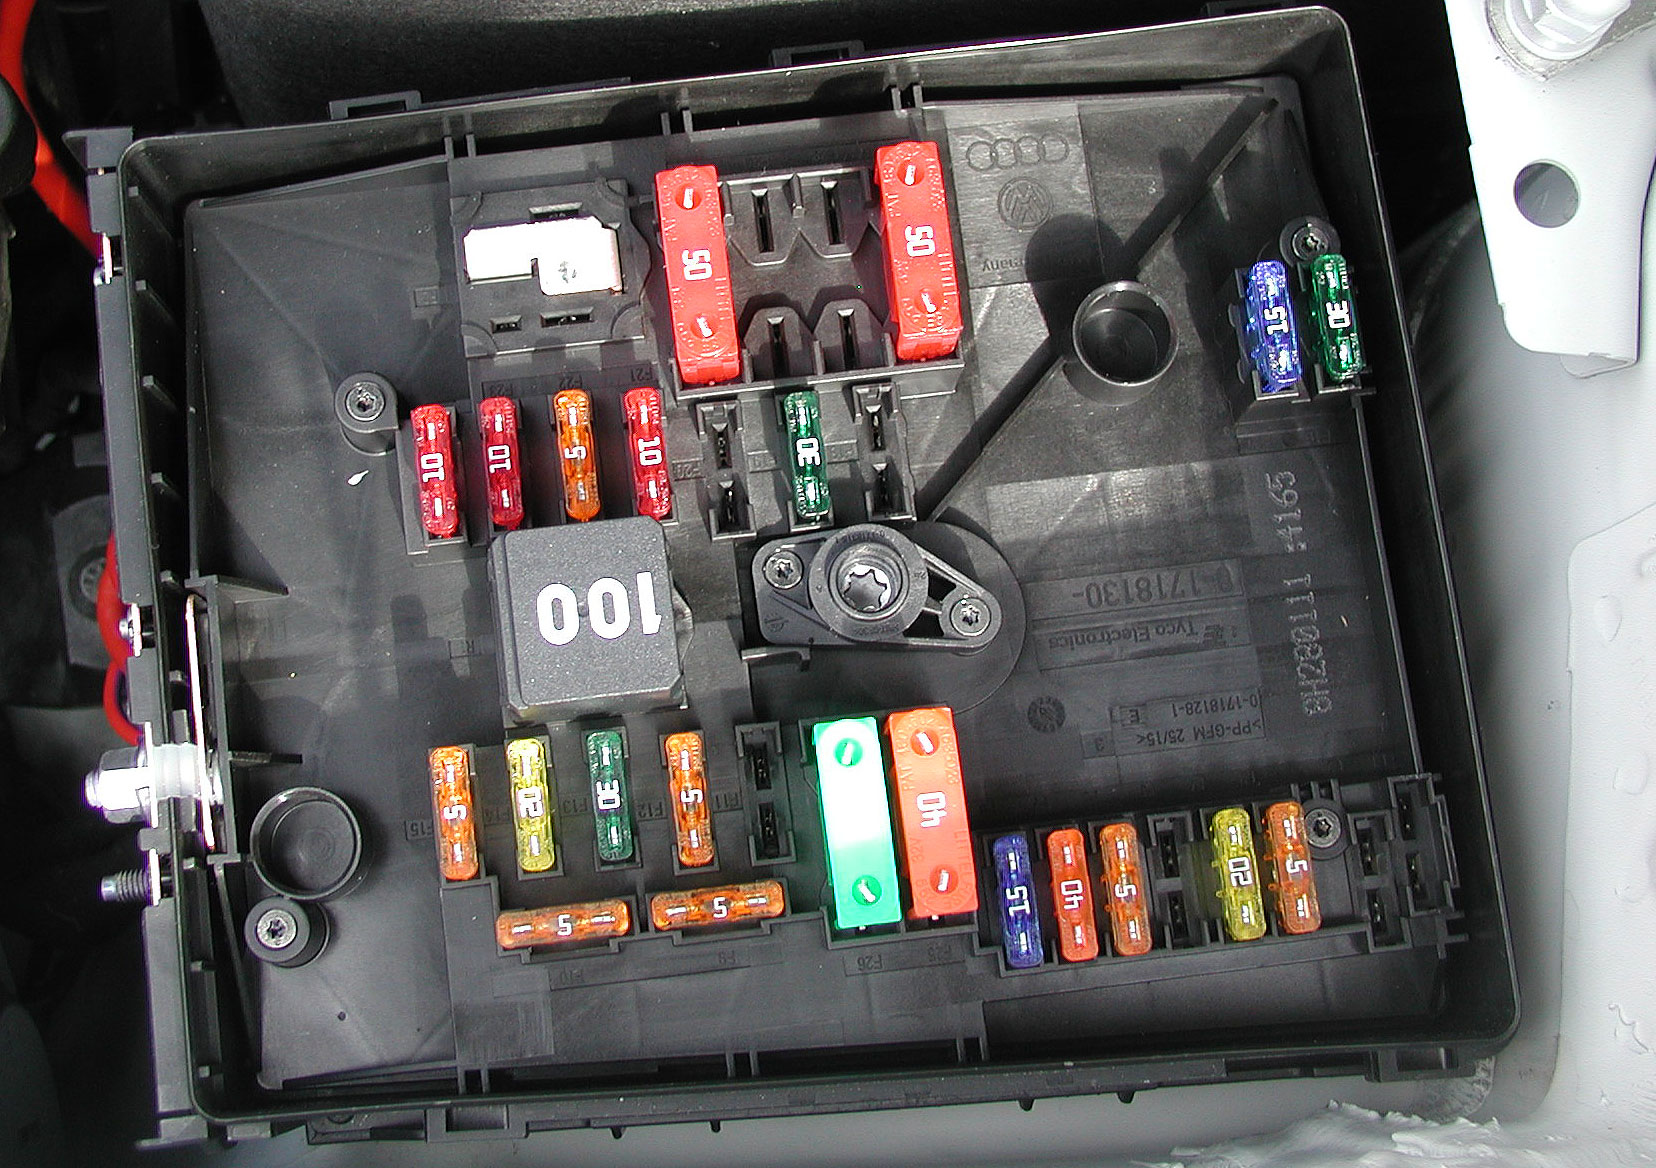 Audi A3 Fuse Box Diagram 2010 Wiring Diagrams 2011 A8 Engine Todays 2007 Mazda Cx 7